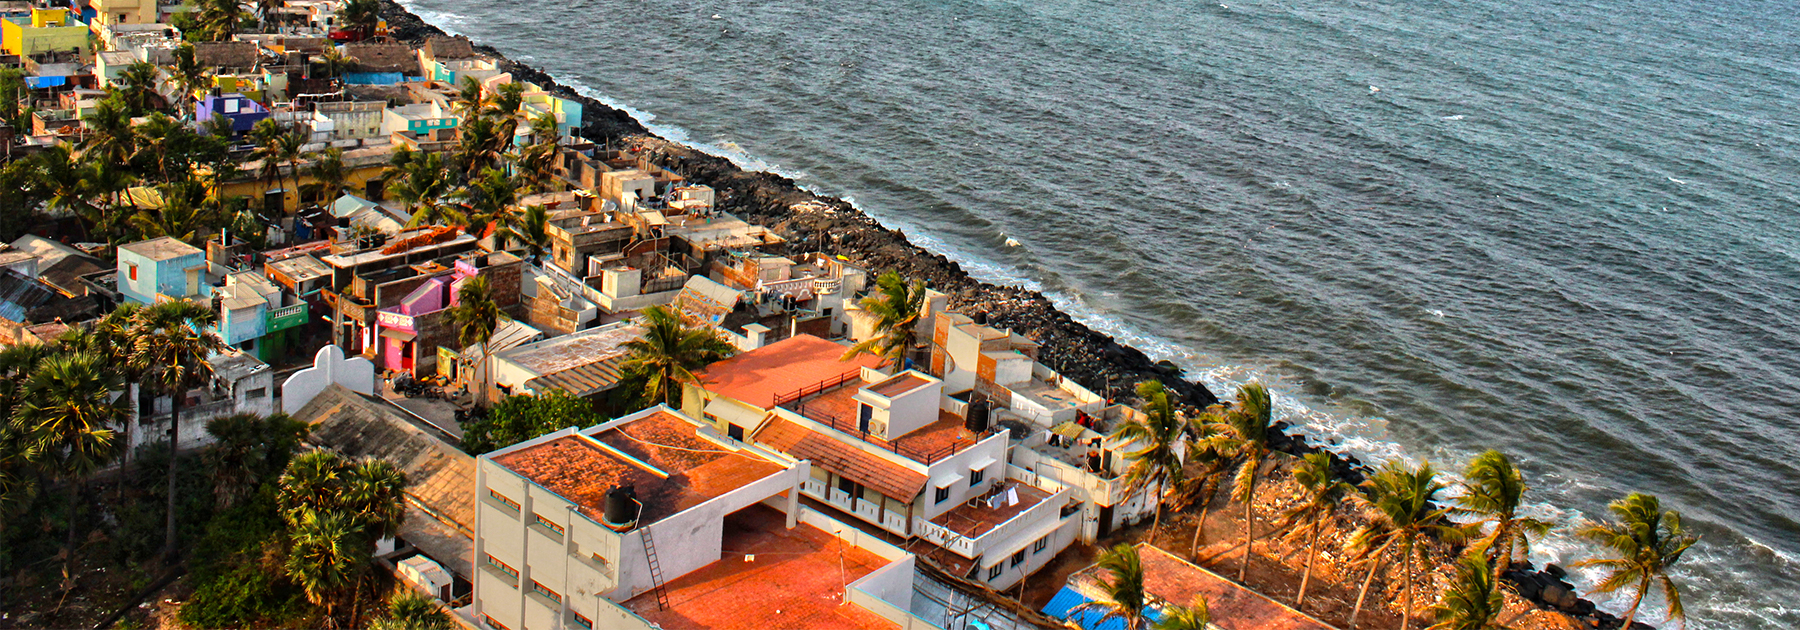 View of Puducherry beach from light house. (Karthik Easvur, licensed under CC BY-SA 3.0)